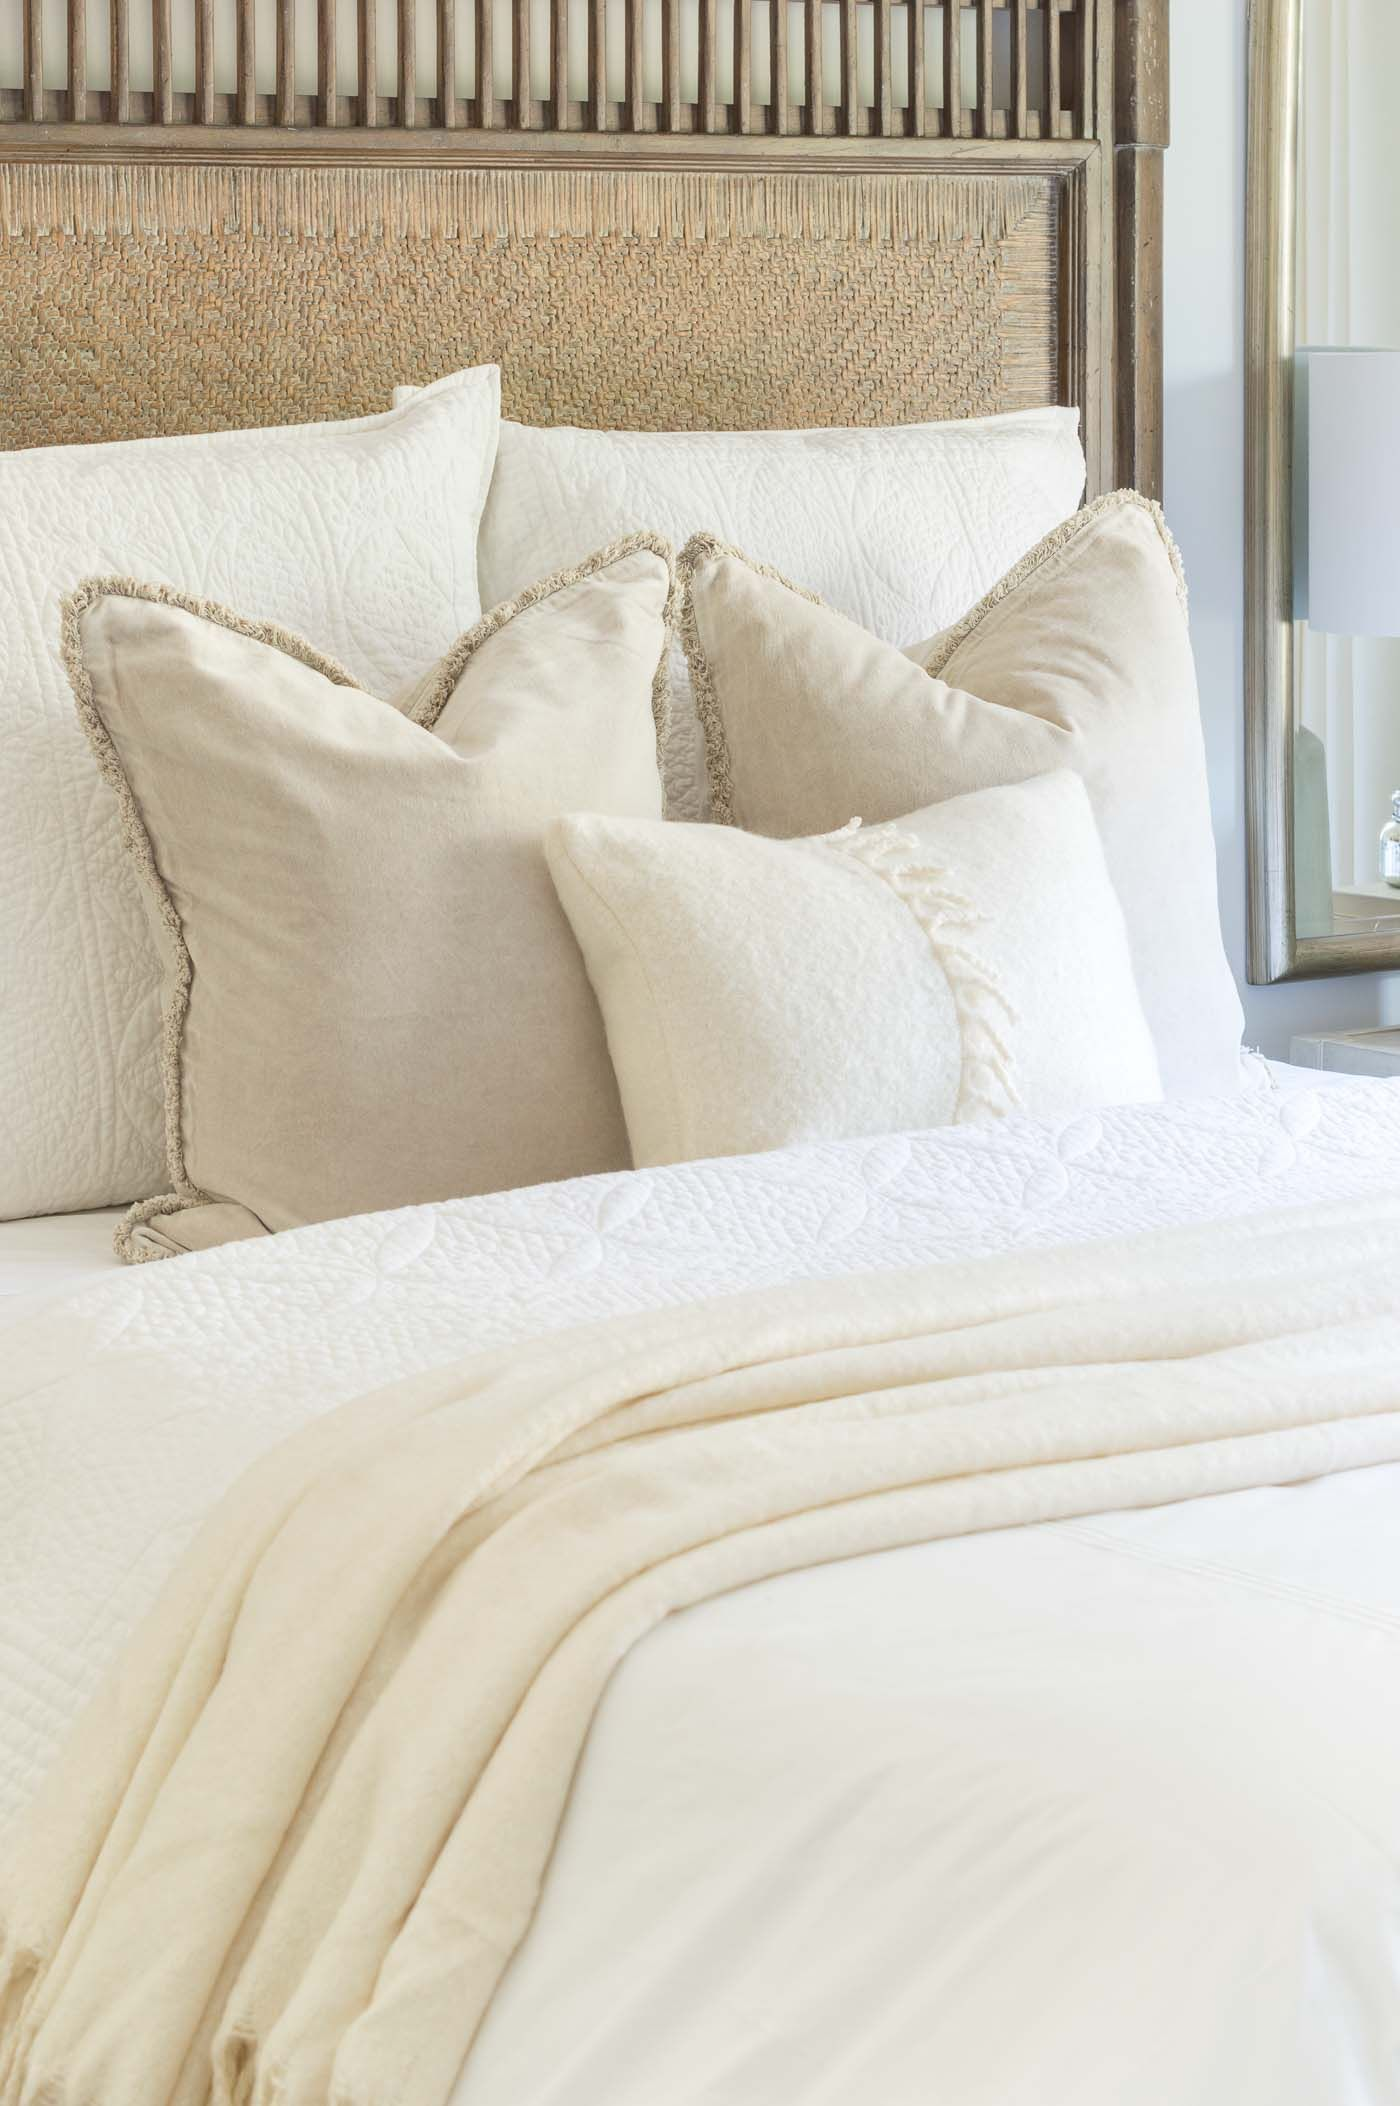 How To Make Your Bed By Mixing Matching Favorite Bedding